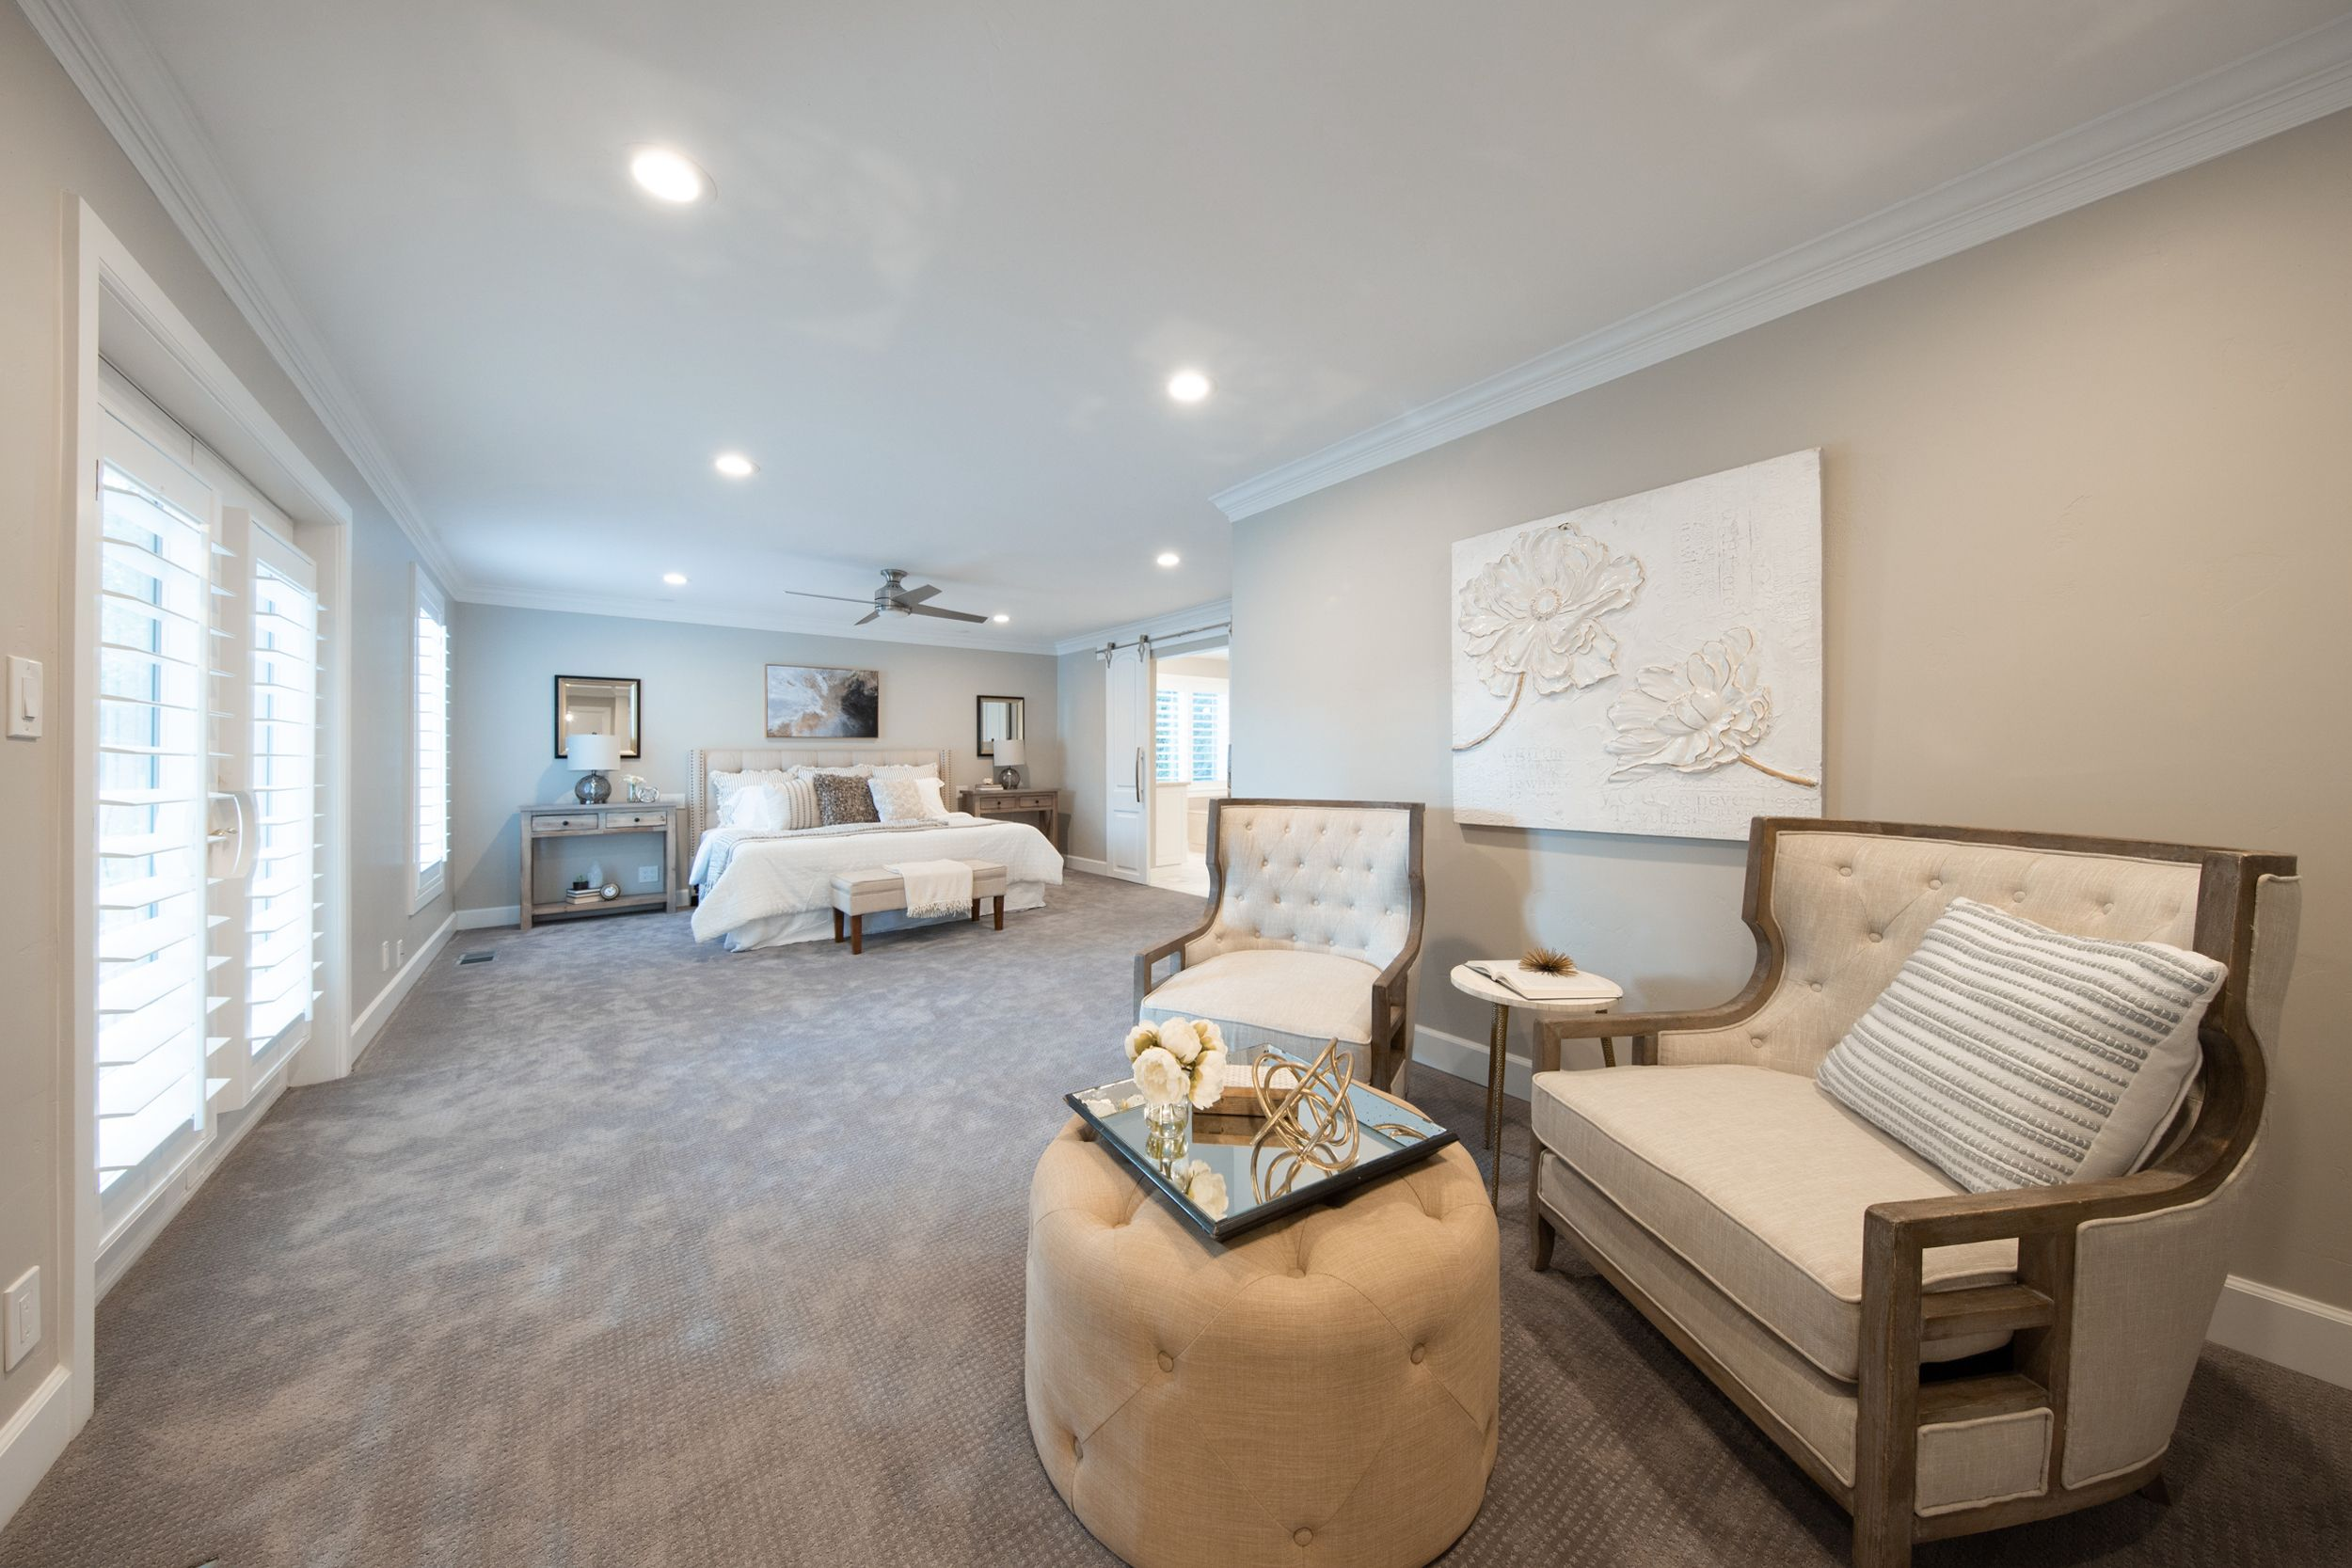 This home has been meticulously updated with a new 50 year warranty roof, new plumbing pipes, new heating system, and new sprinkler system. #WindermereUtah #RealEstate #UtahHomes #HomesForSale #Bedroom #MasterBedroom #DreamHome #LuxuryHomes #Luxury #DreamHome #InteriorDesign #InteriorDecor #Interiors #Bed #SittingArea